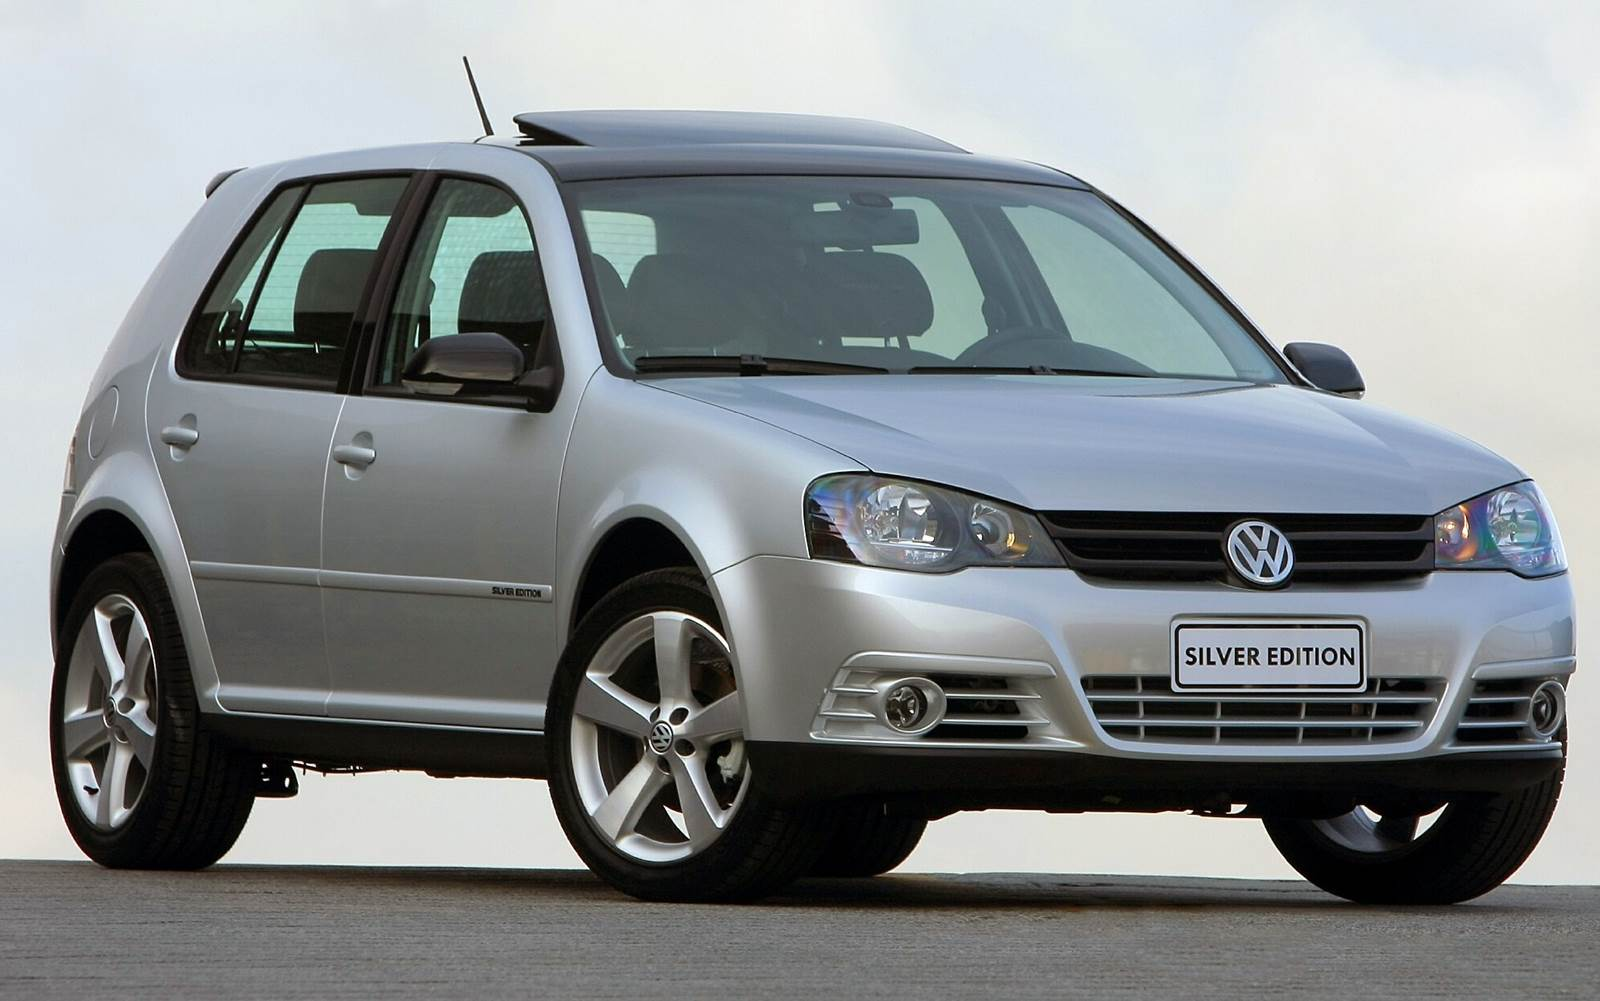 vw golf 2010 silver edition pre o r reais car. Black Bedroom Furniture Sets. Home Design Ideas